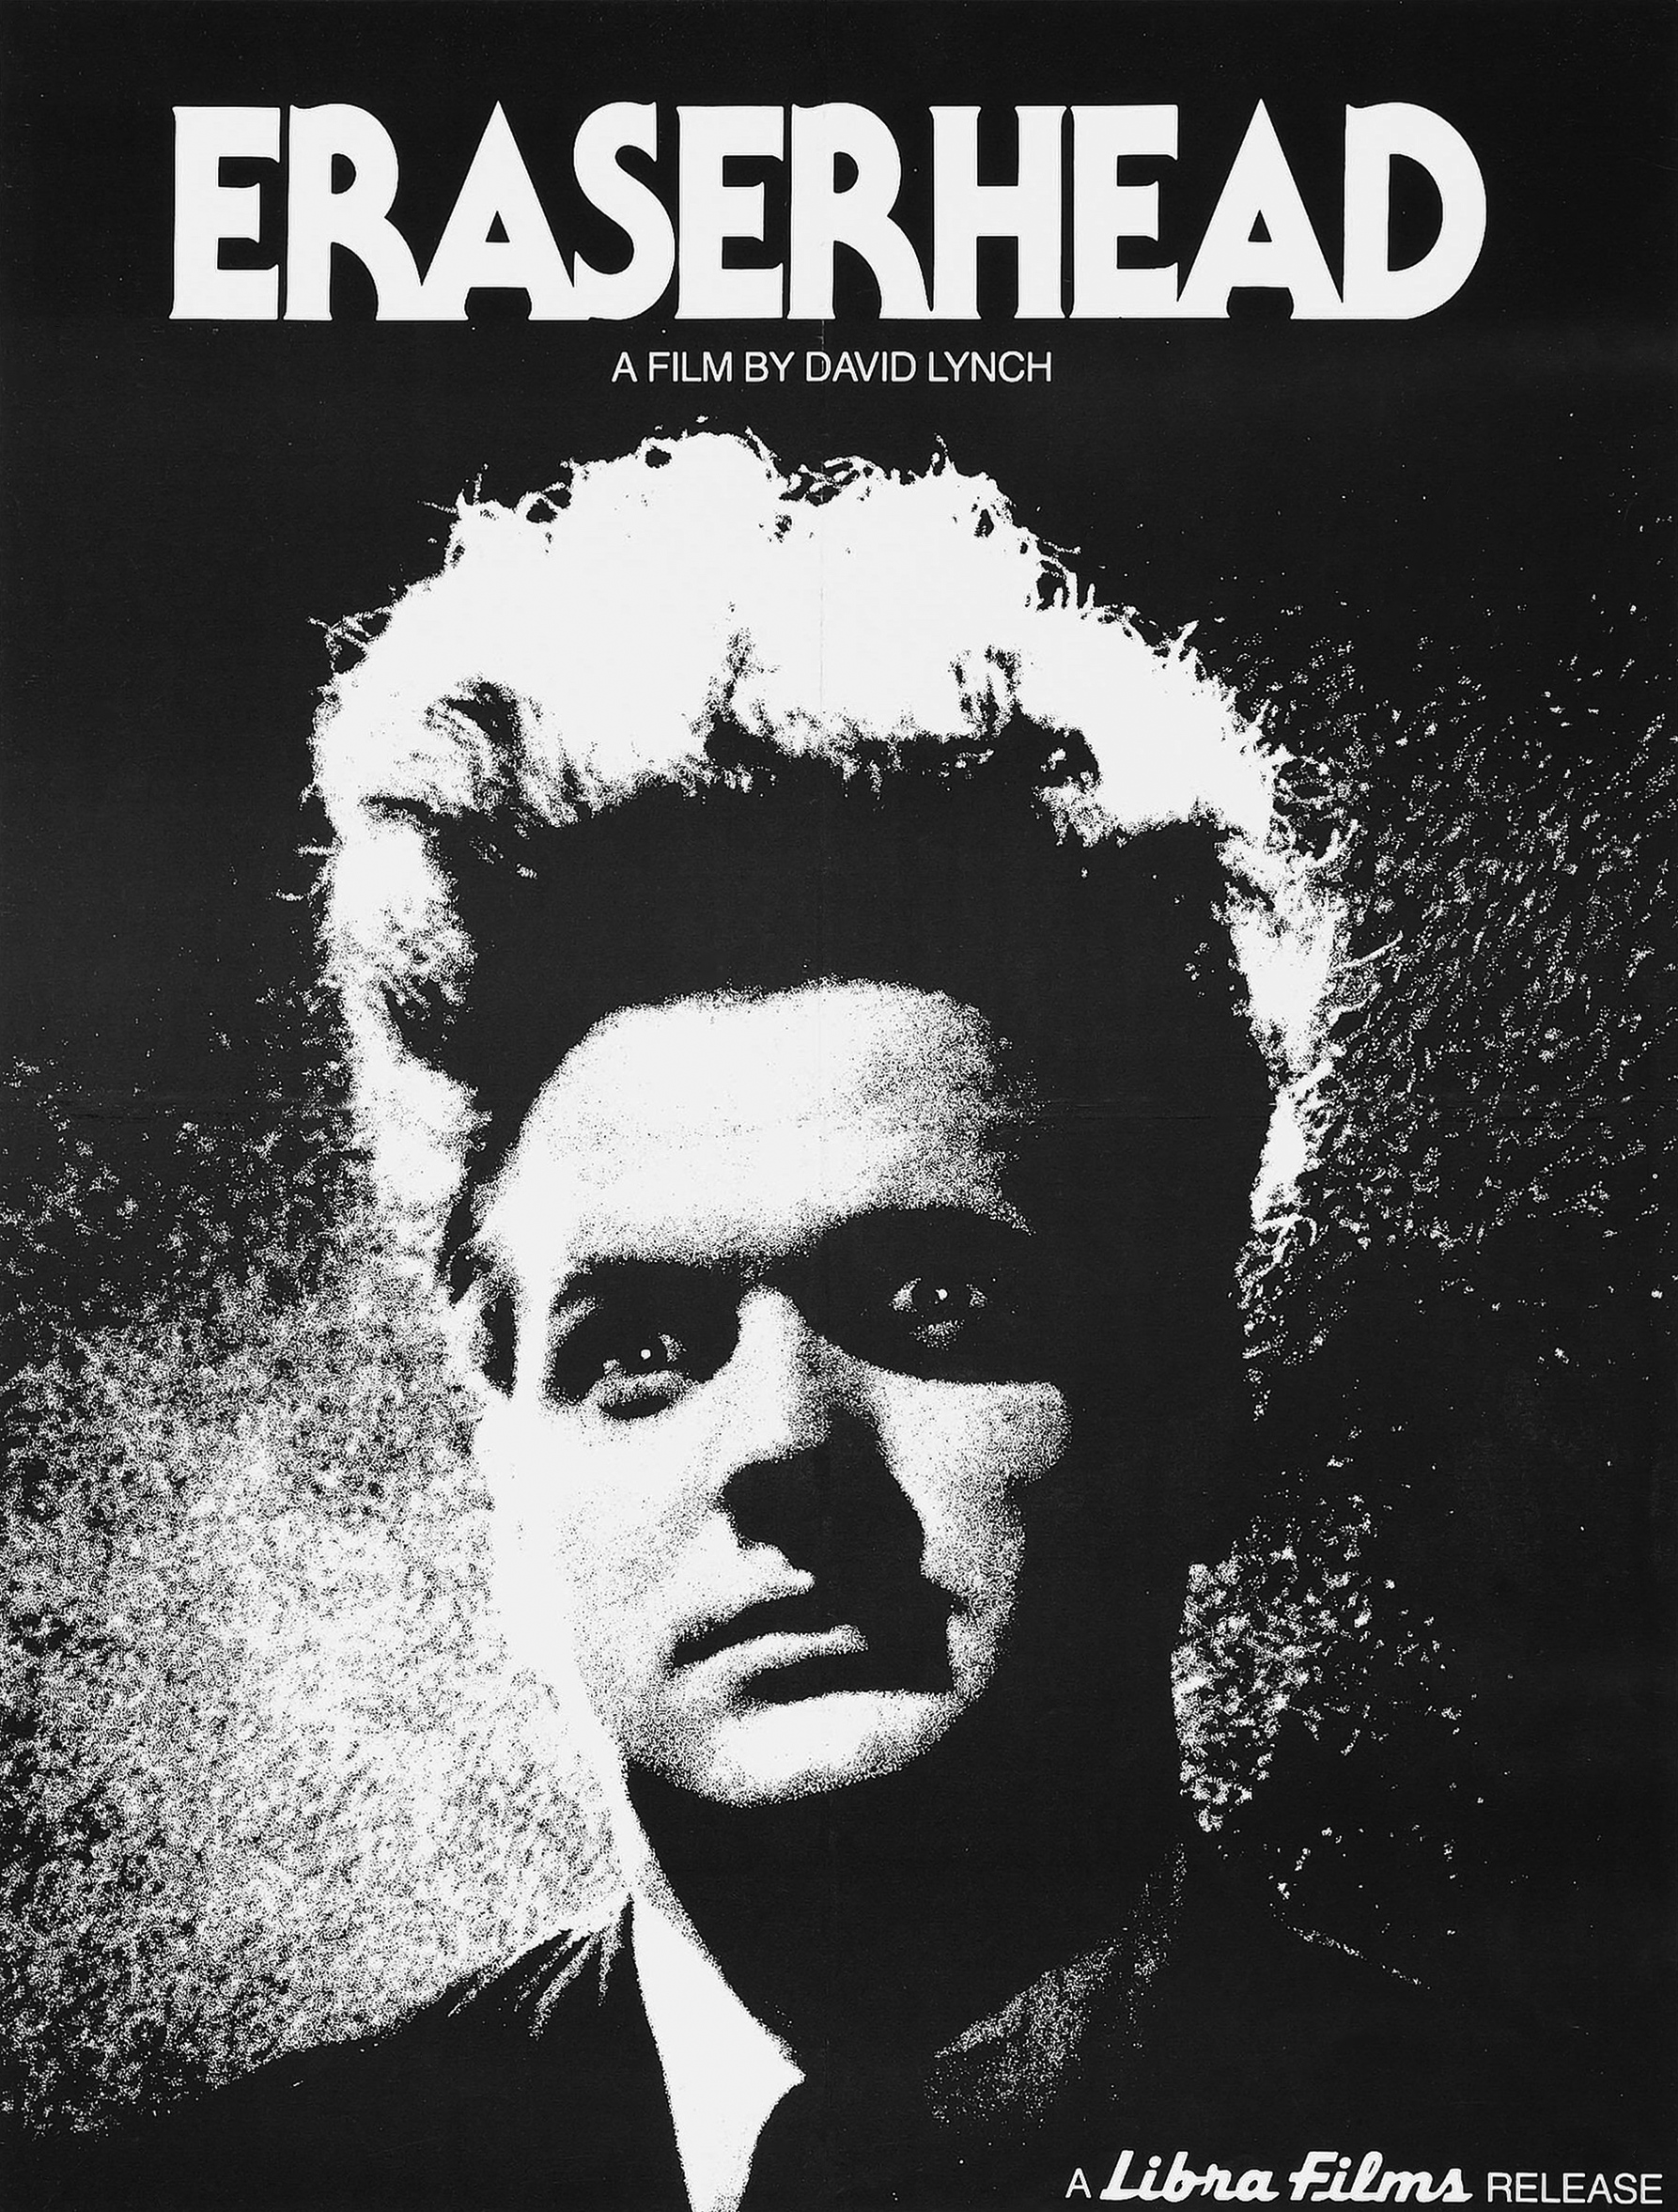 http://upload.wikimedia.org/wikipedia/commons/1/18/Eraserhead.jpg